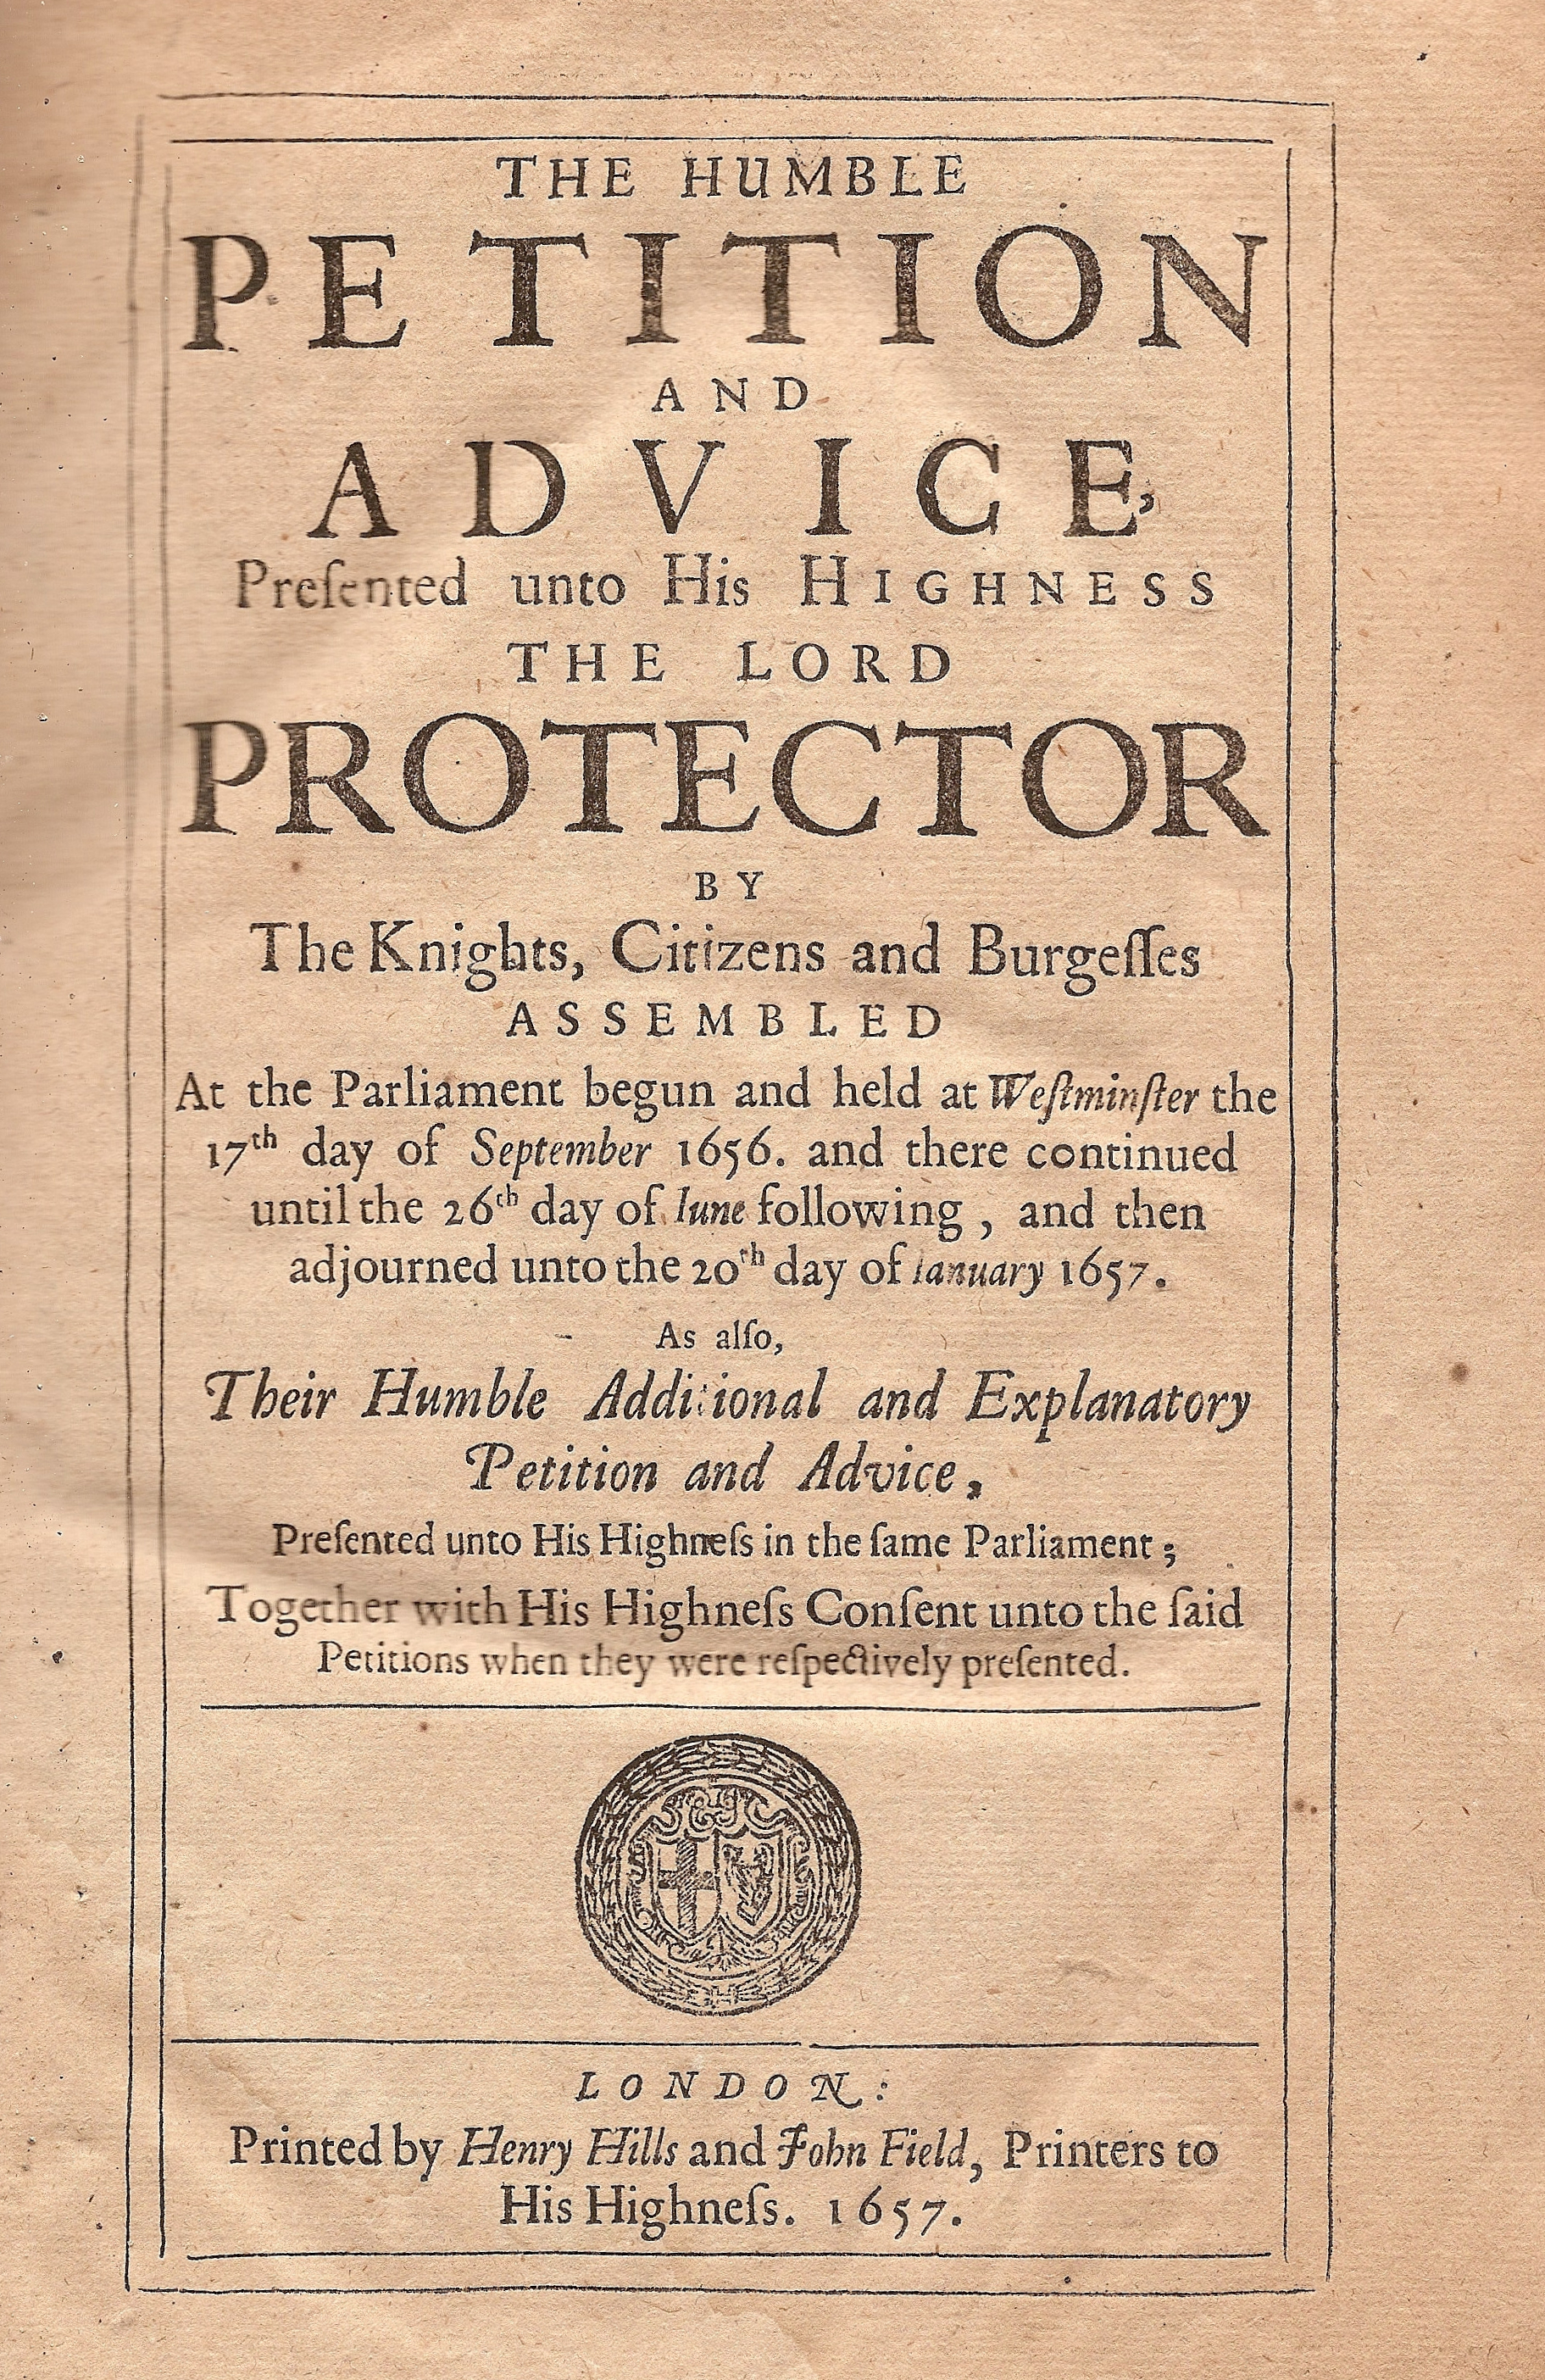 """The Humble Petition and Advice presented unto his Highness the Lord Protector of Knights, Citizens and Burgesses assembled"", 1657. thumbnail"